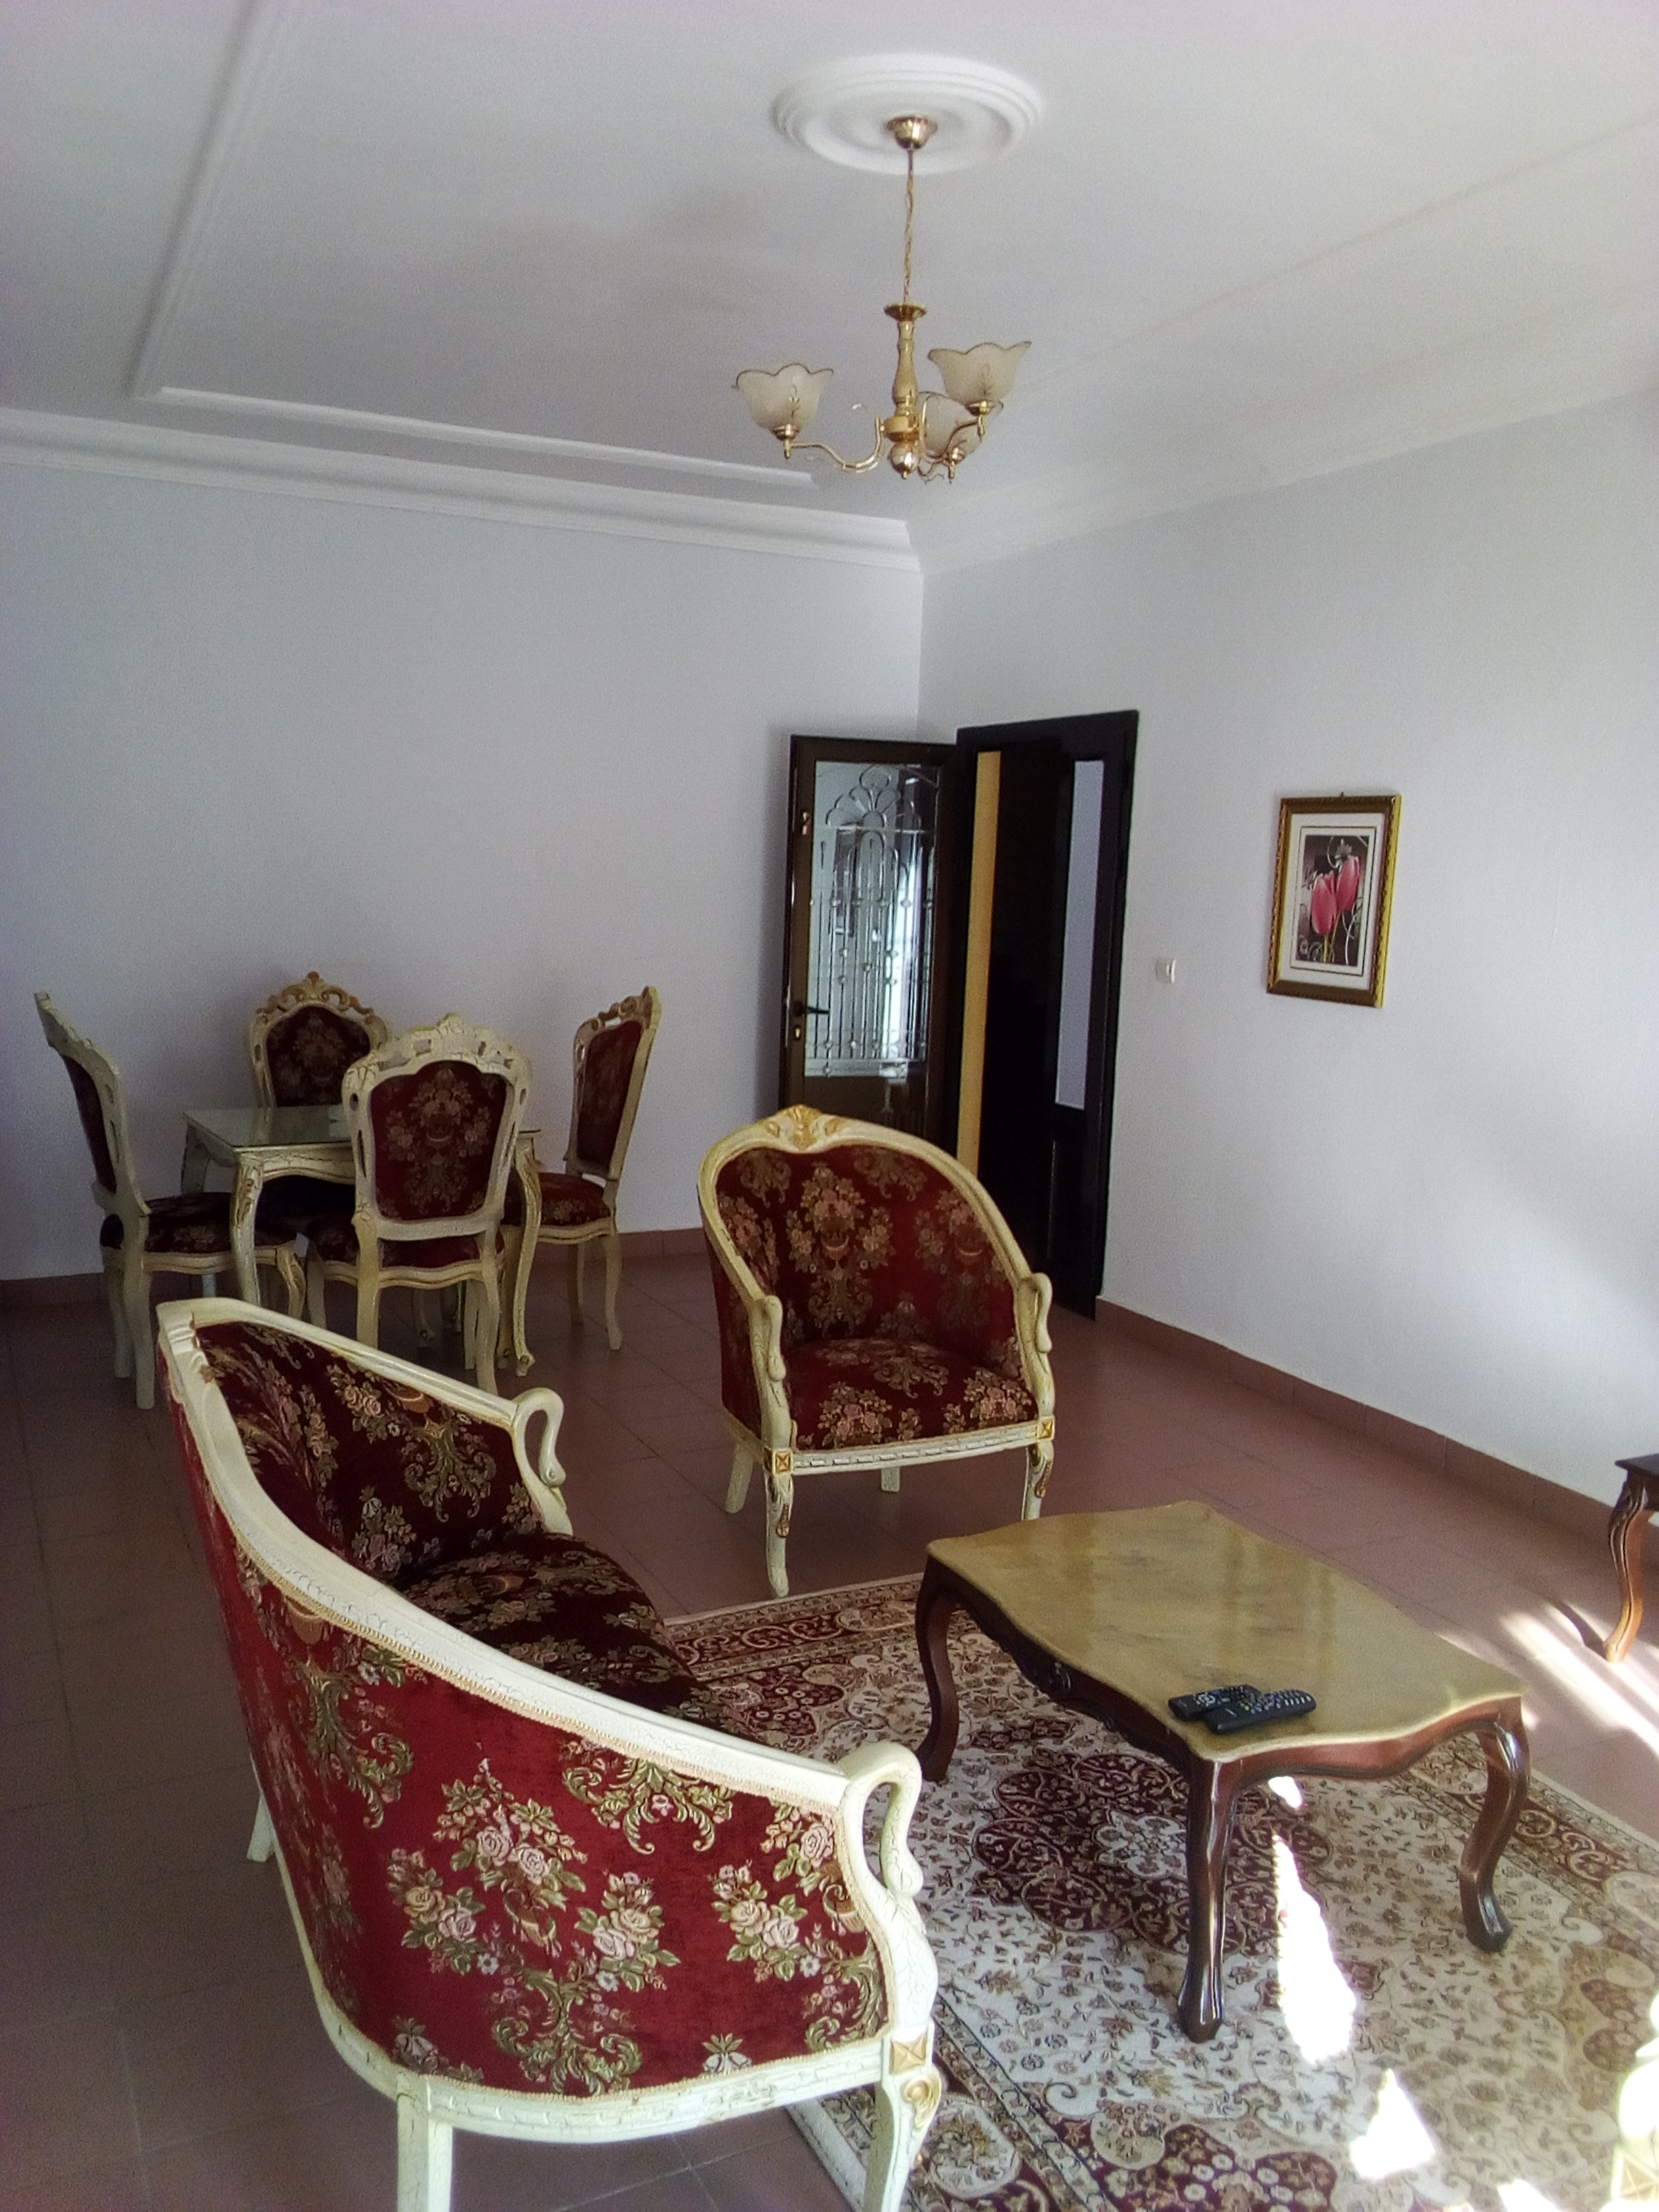 Apartment to rent - Yaoundé, Bastos, pas loin de lorient rouge - 1 living room(s), 2 bedroom(s), 3 bathroom(s) - 800 000 FCFA / month